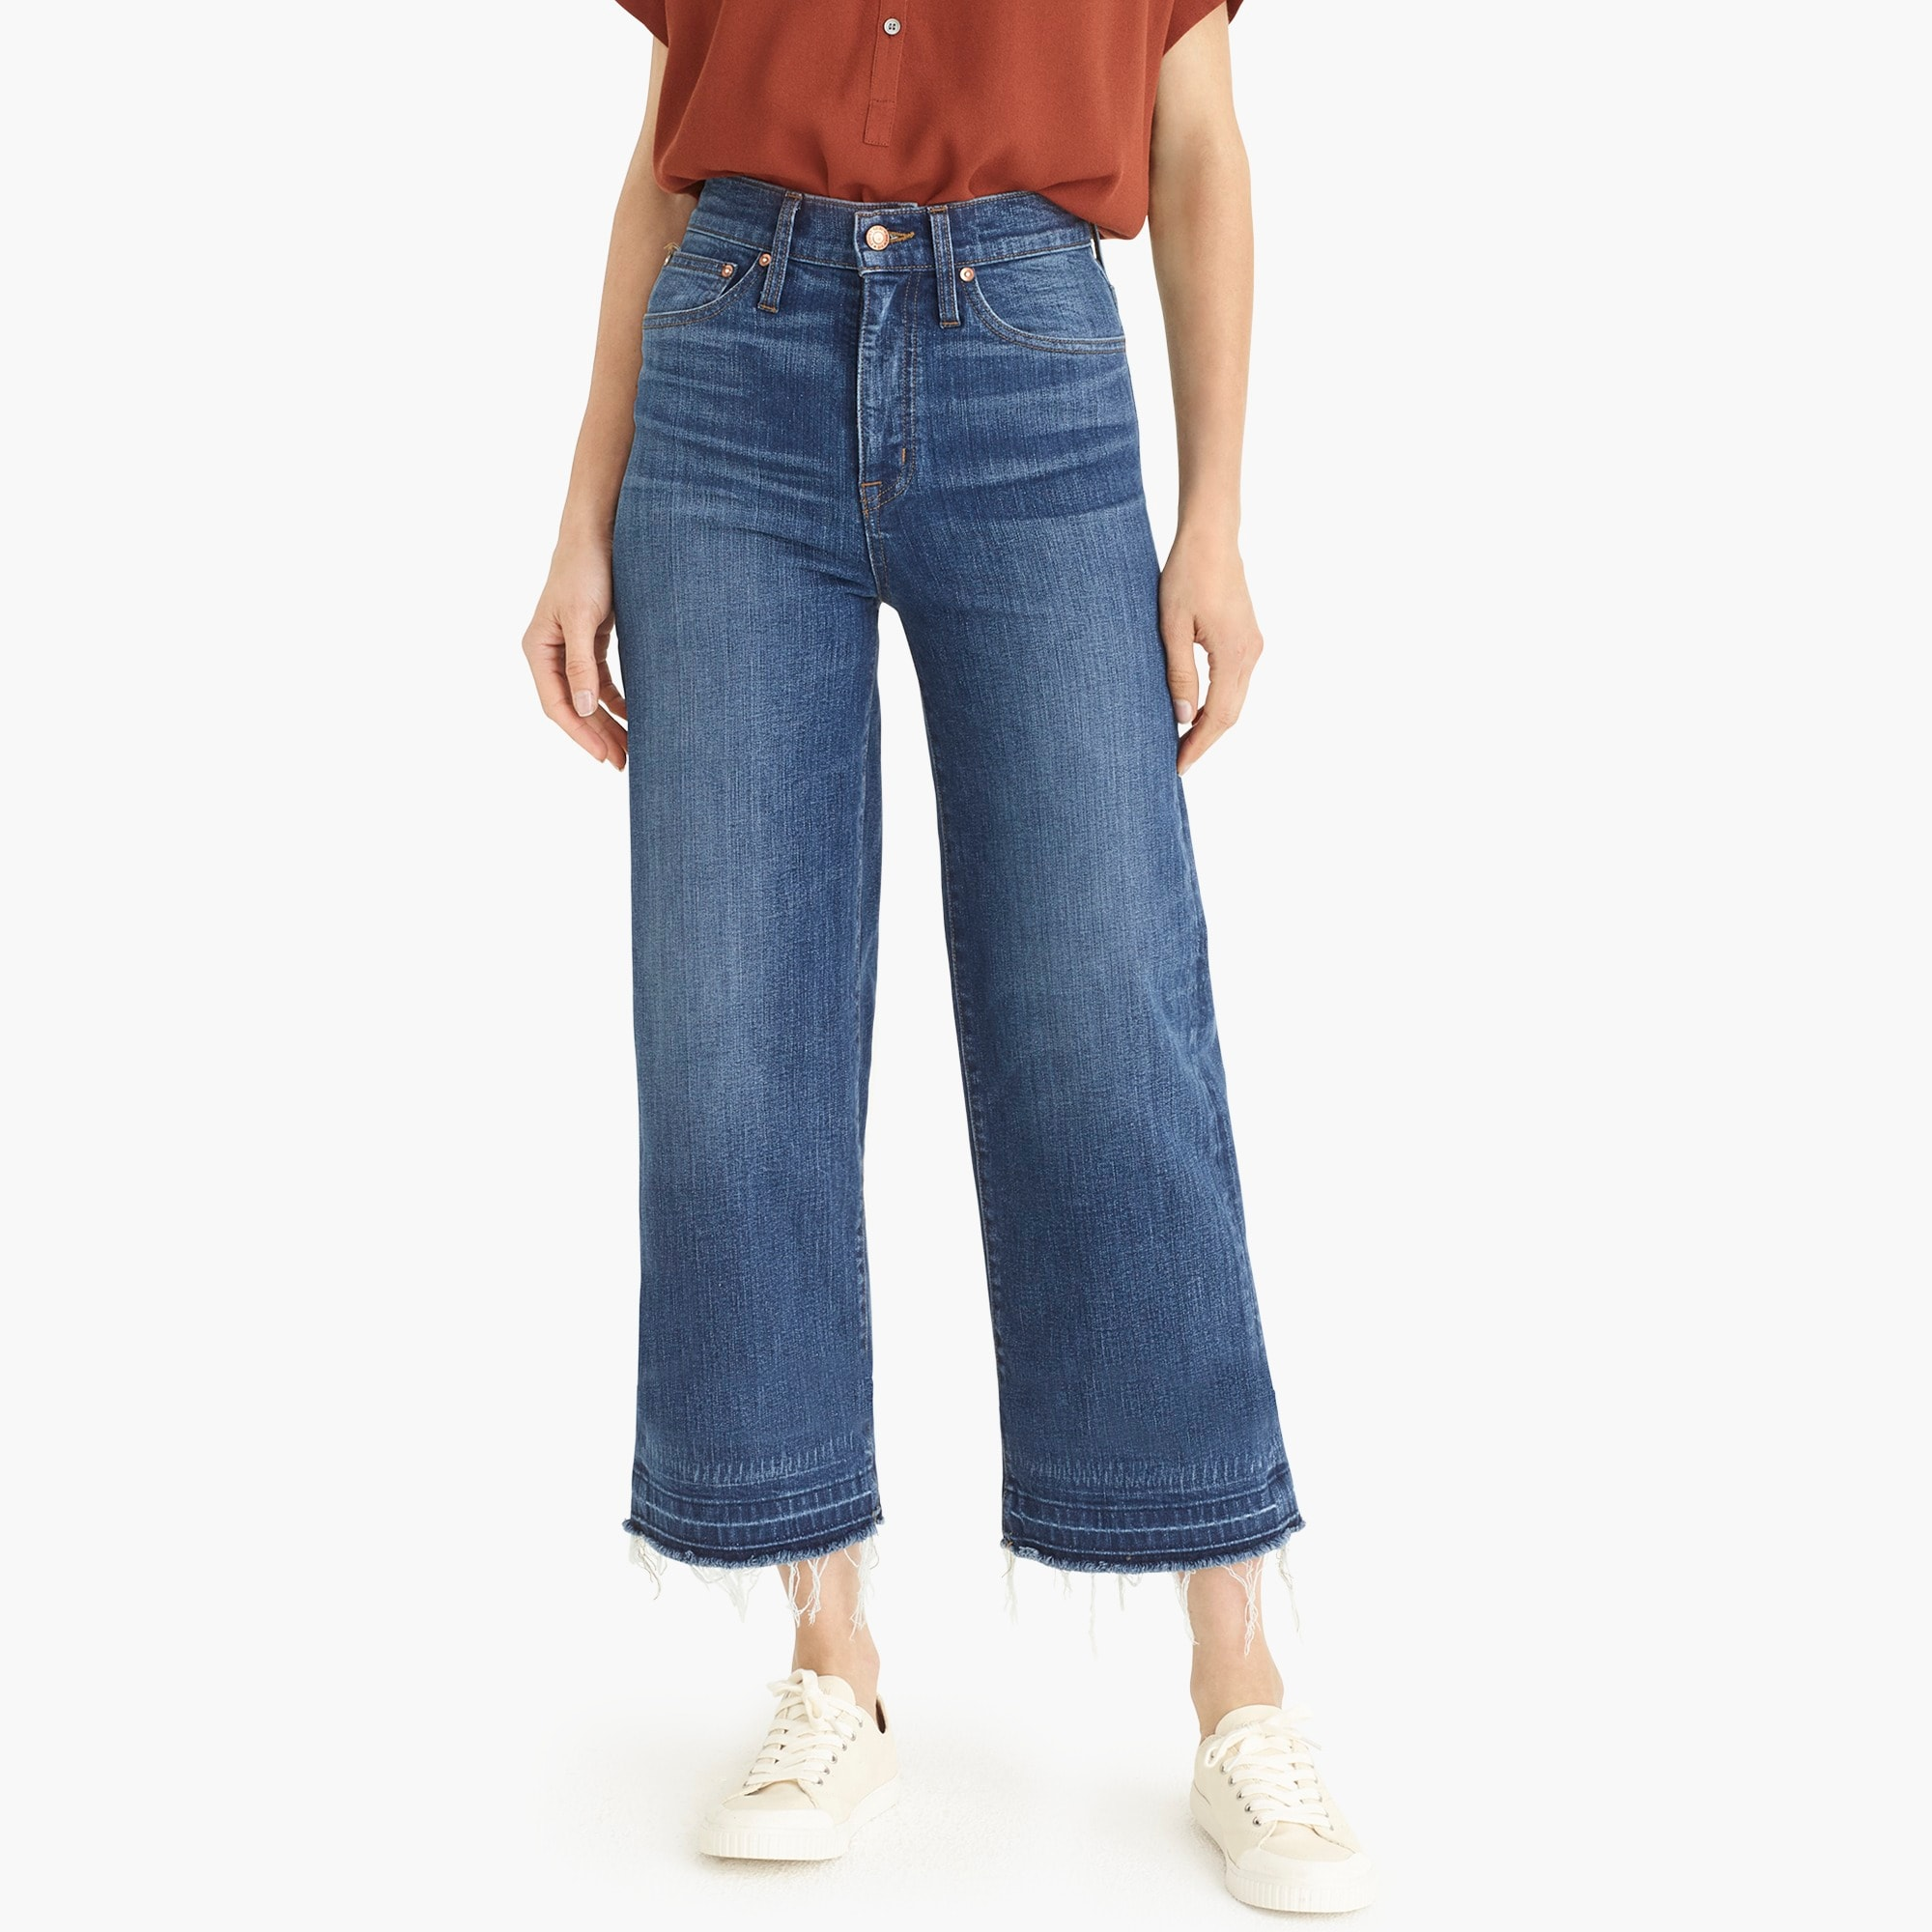 Image 4 for Point Sur wide-leg crop jean with let-down hem